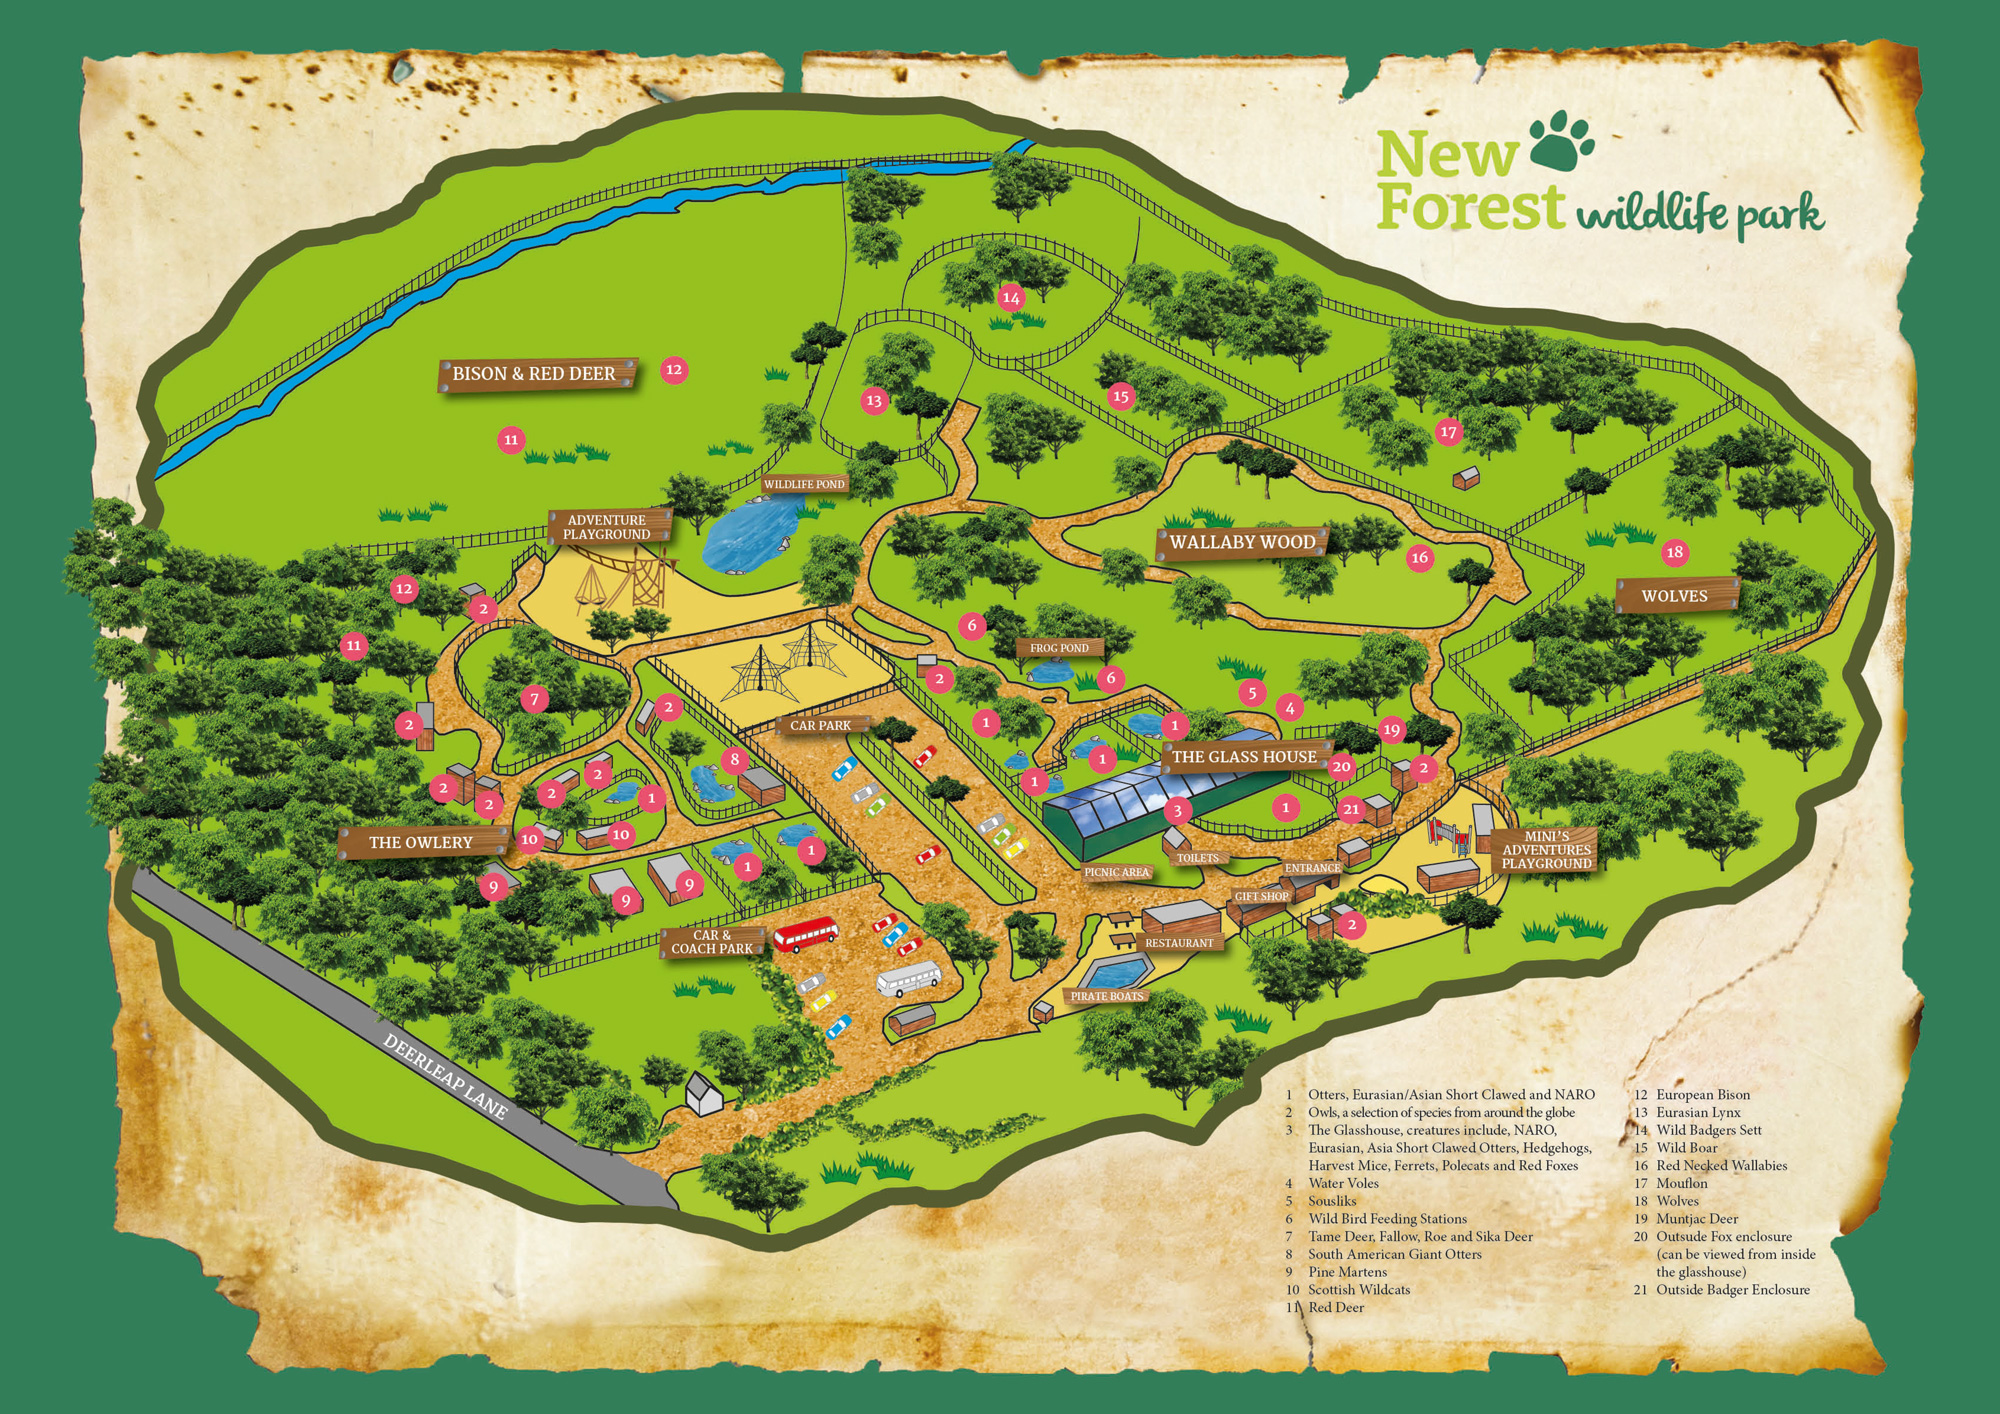 The Park Map  New Forest Wildlife Park